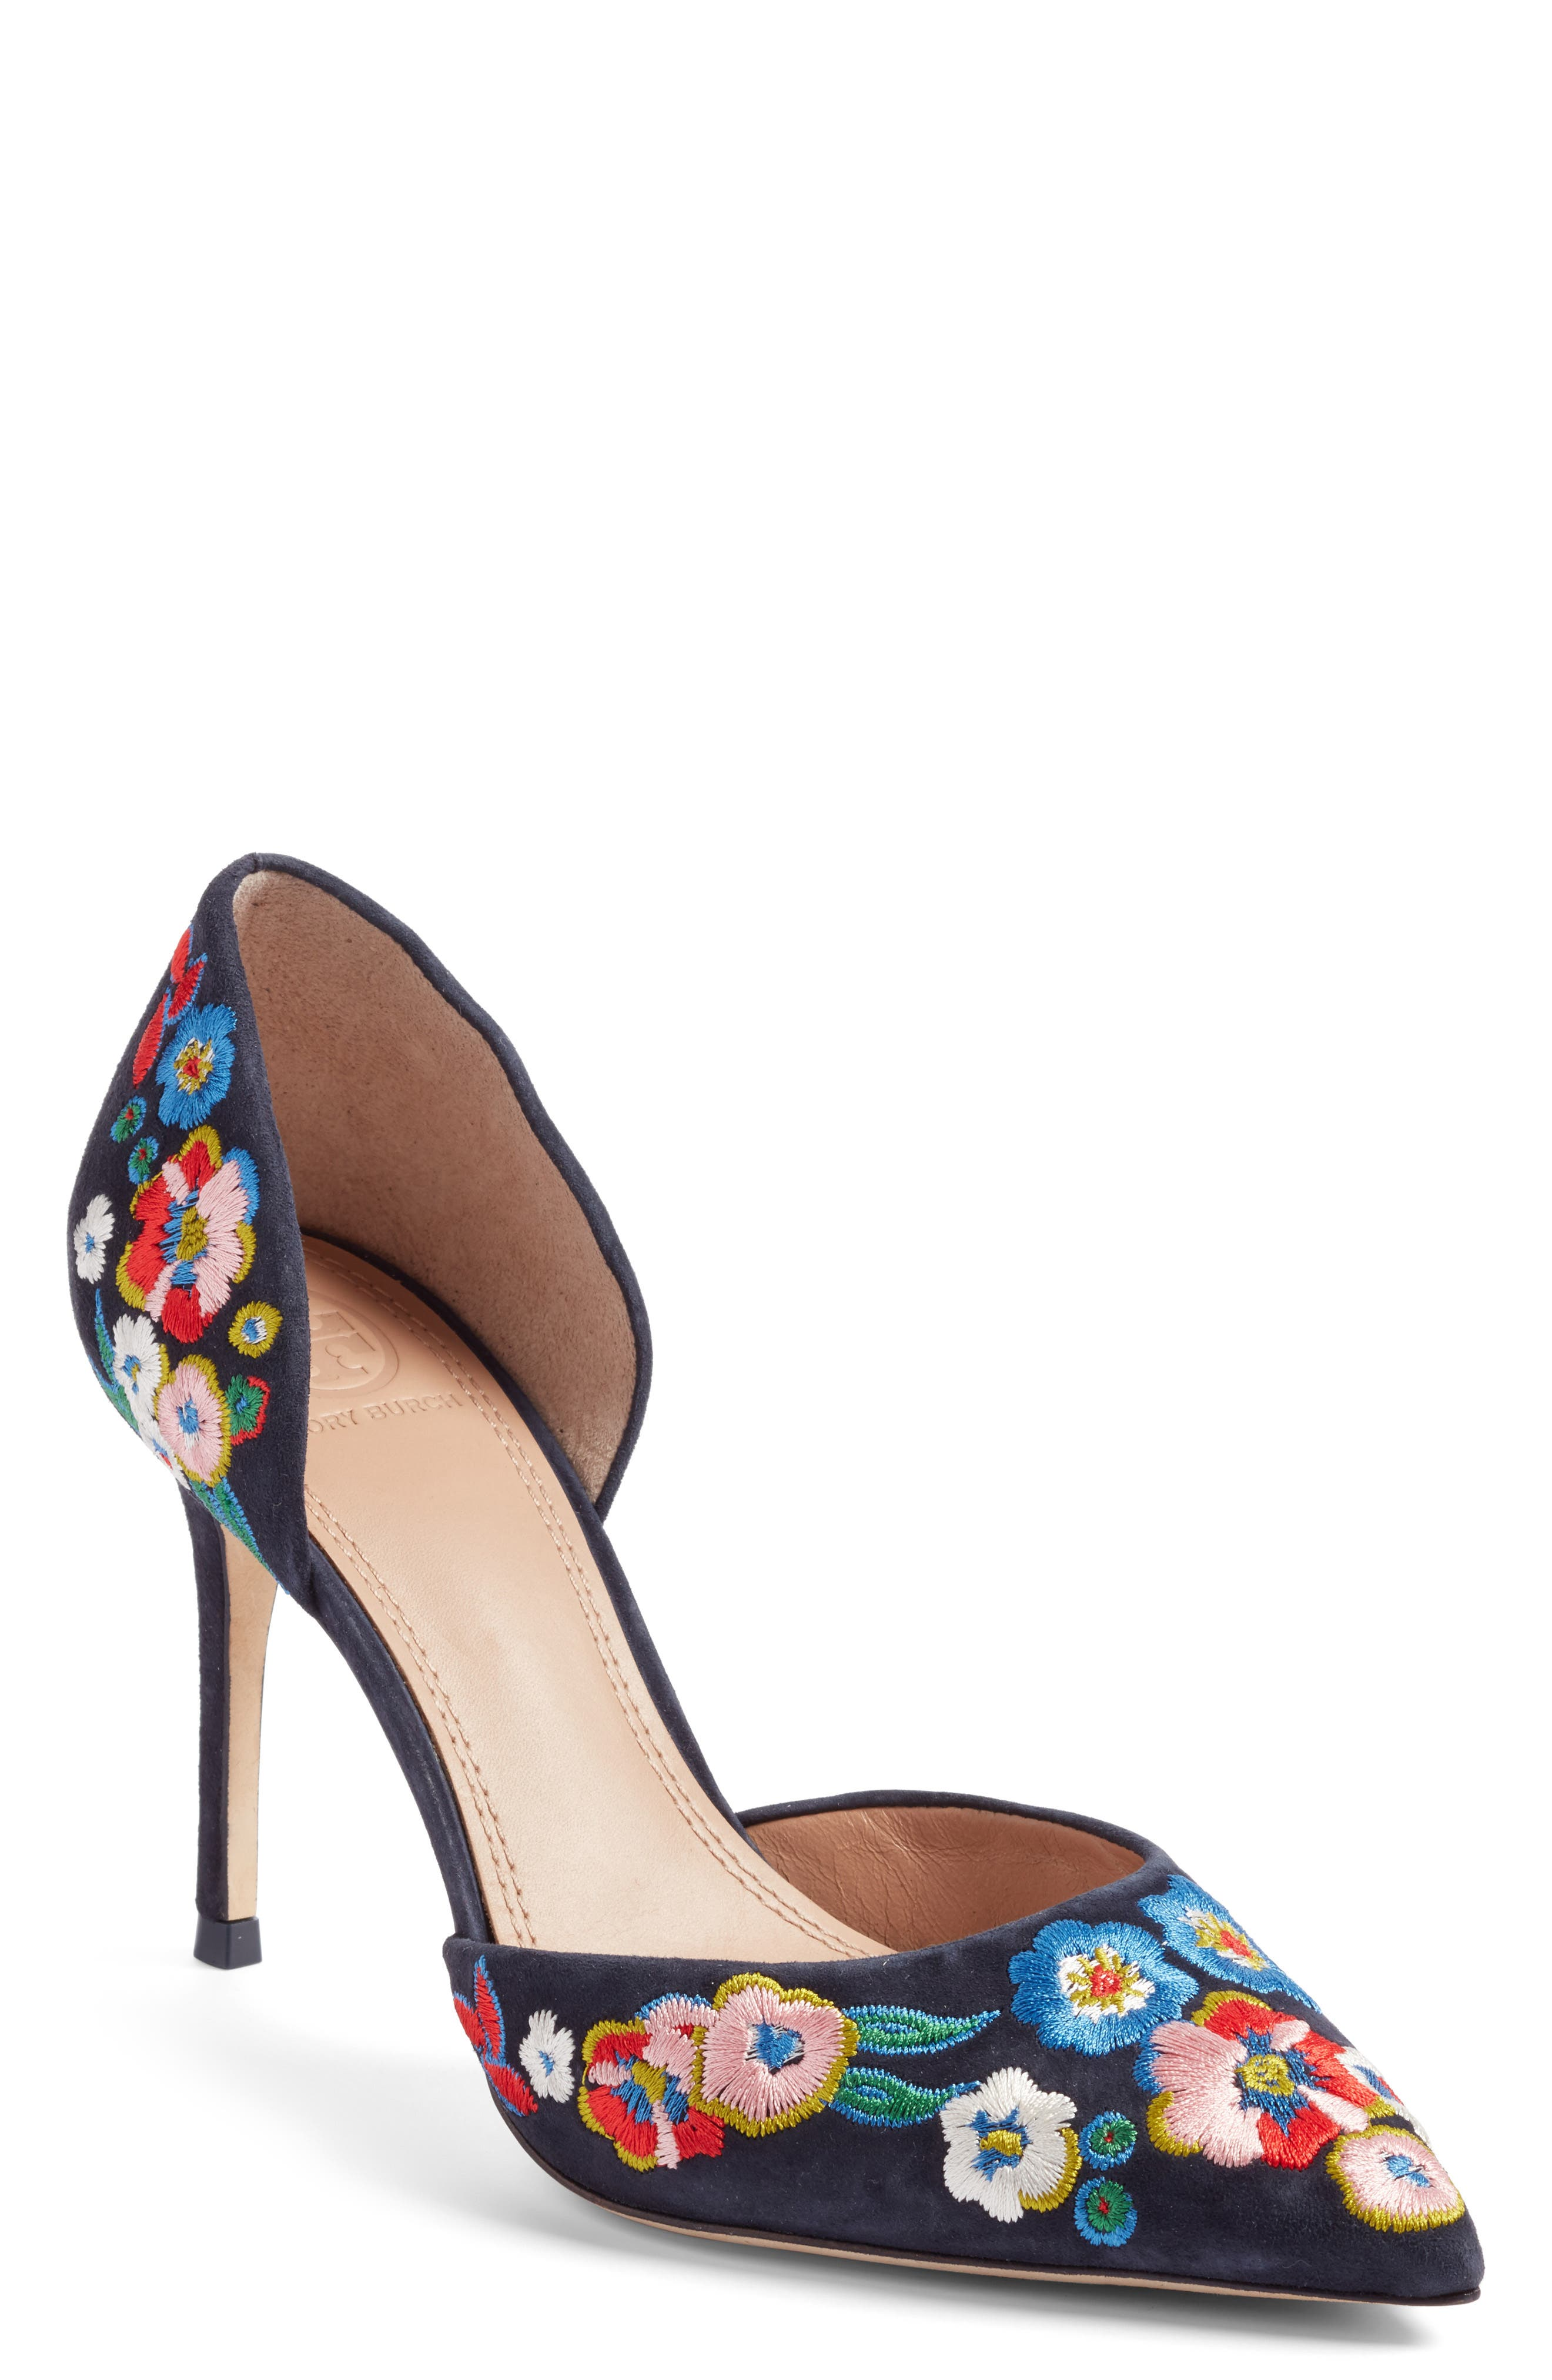 Tory Burch Rosemont Embroidered Pansy d'Orsay Pump (Women)